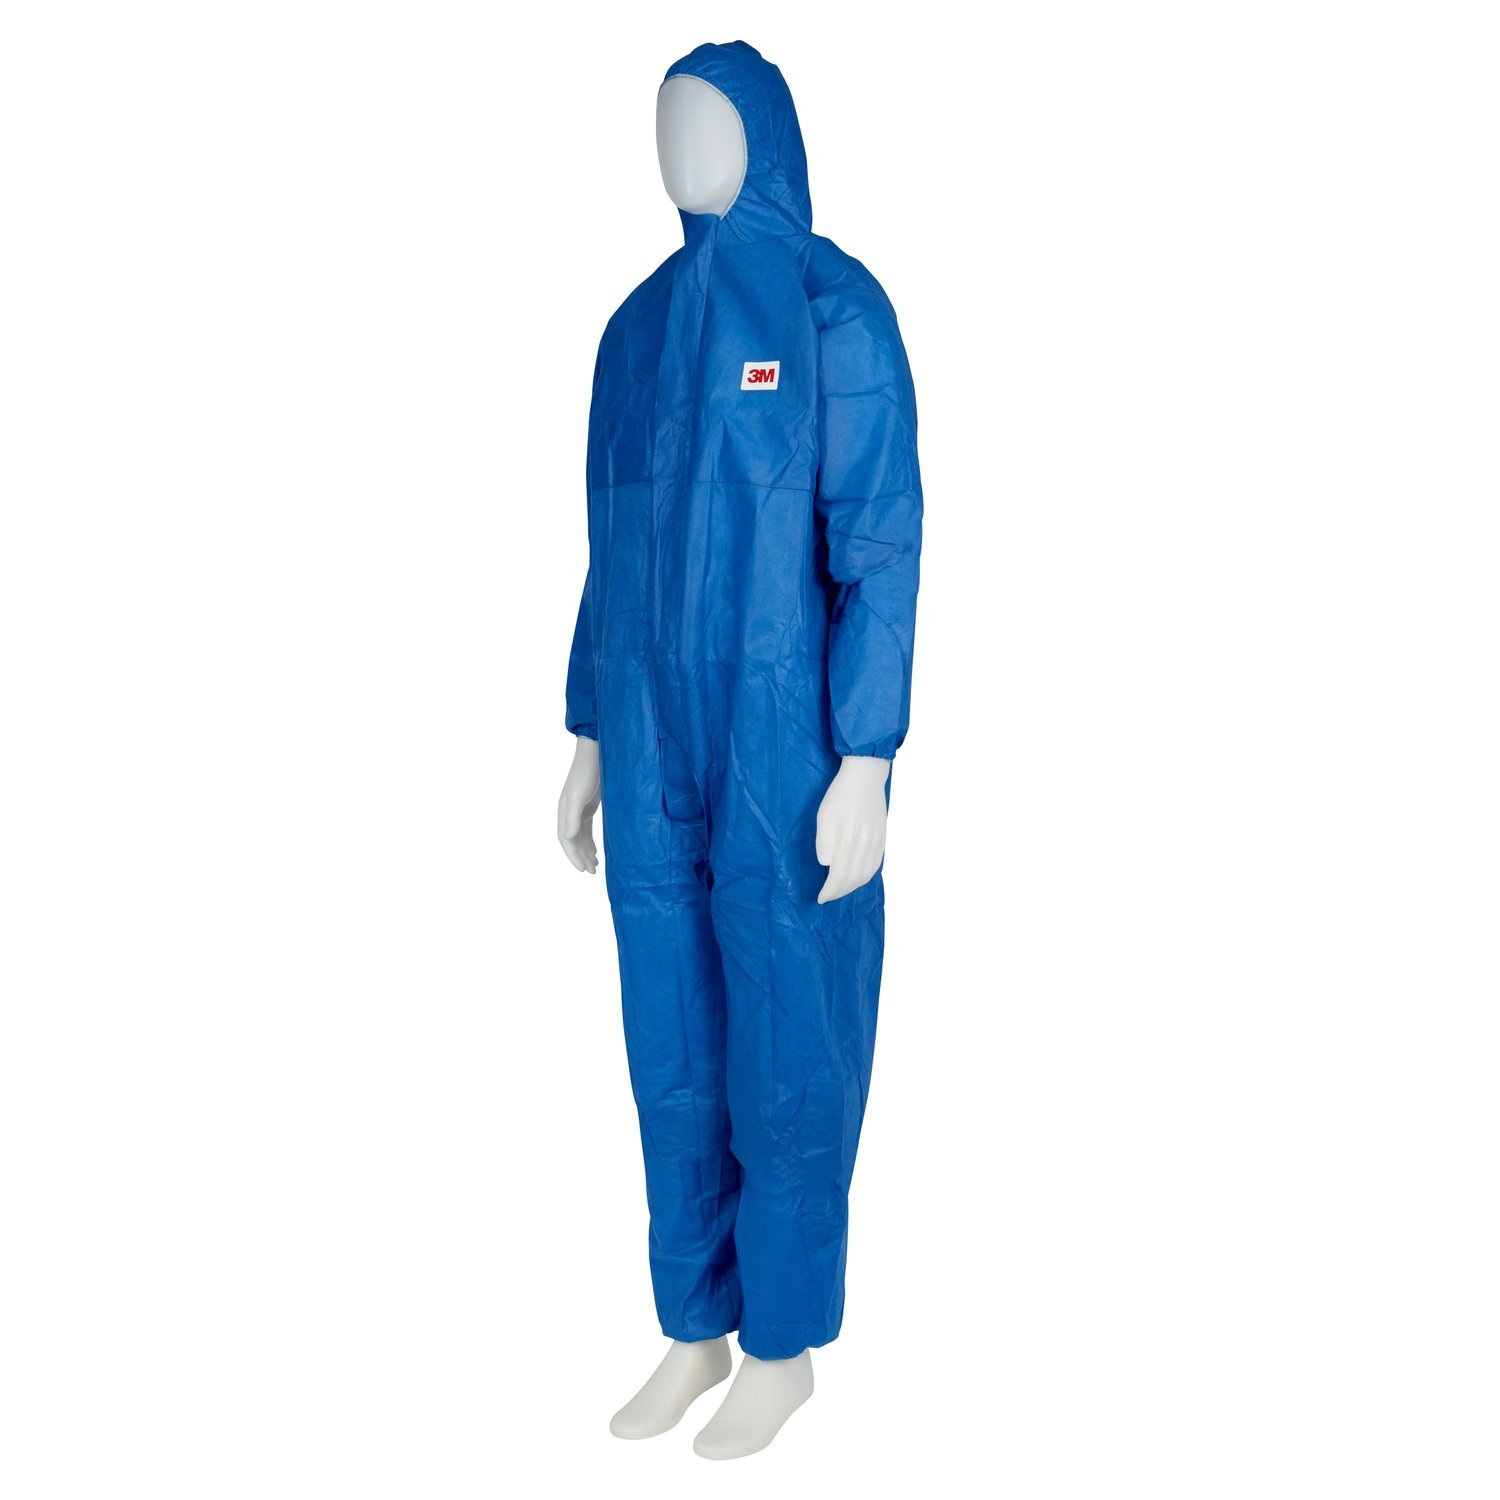 Blue 3M Protective Coverall 4515-B-2XL